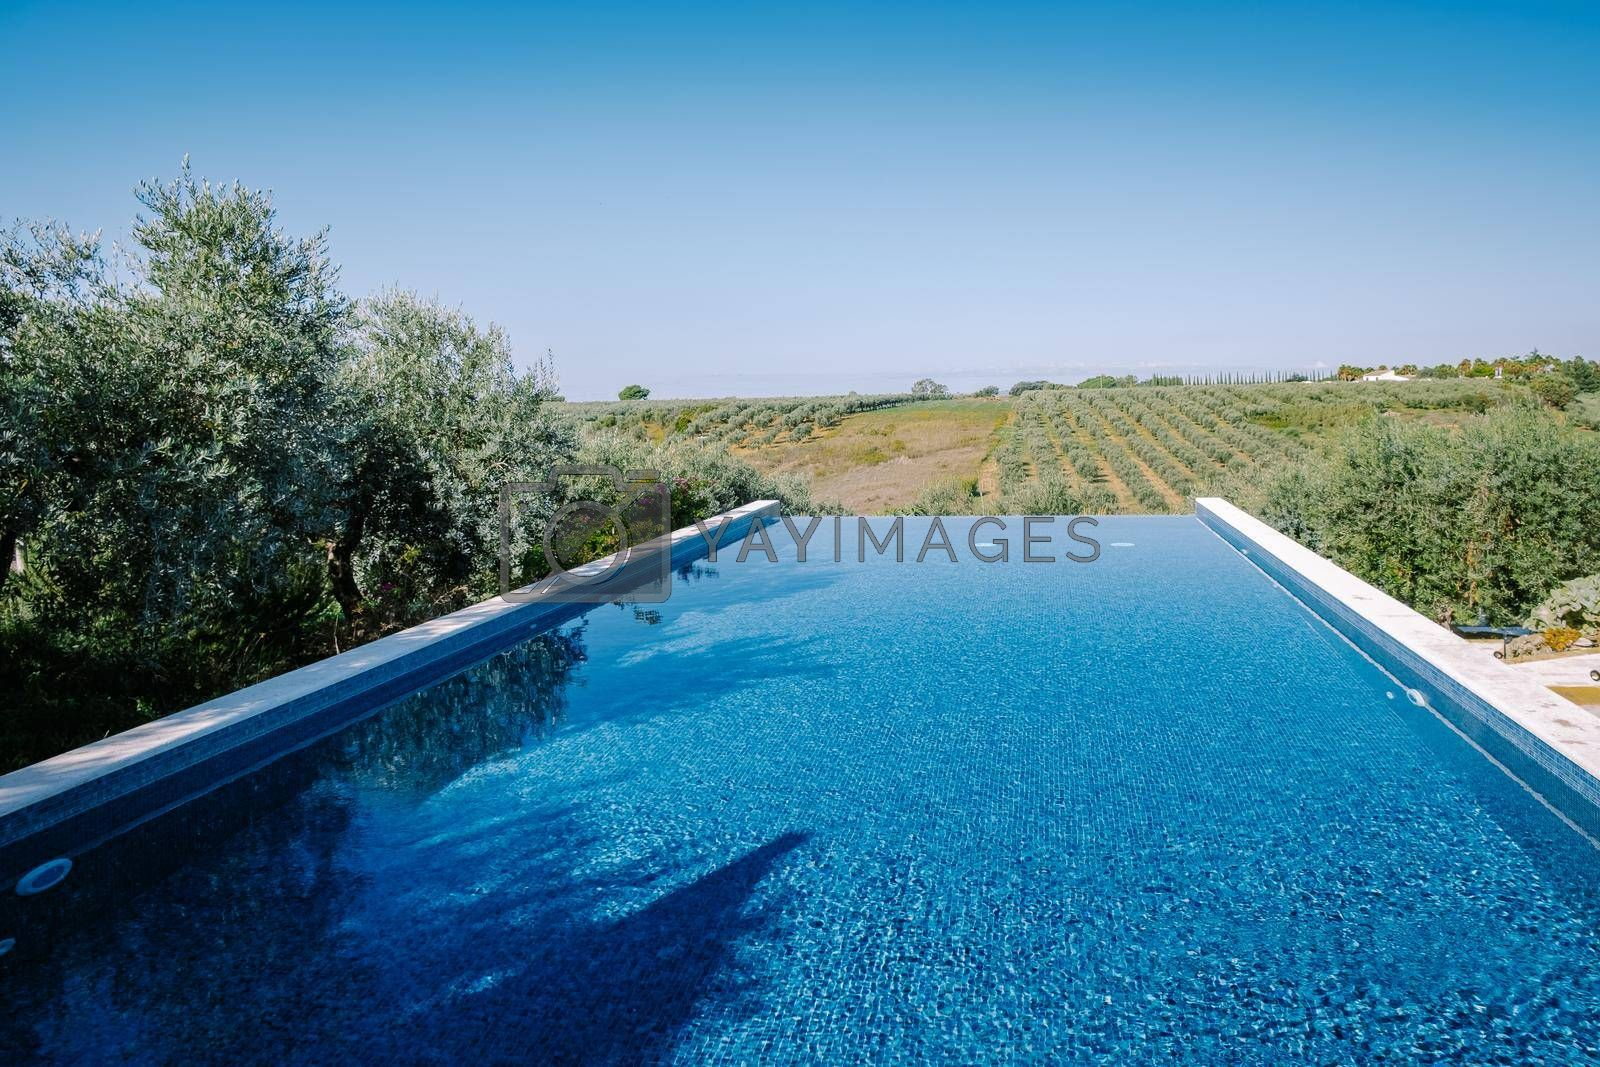 Luxury resort with a view over the wine field in Selinunte Sicily Italy. infinity pool with a view over wine fields in Sicilia